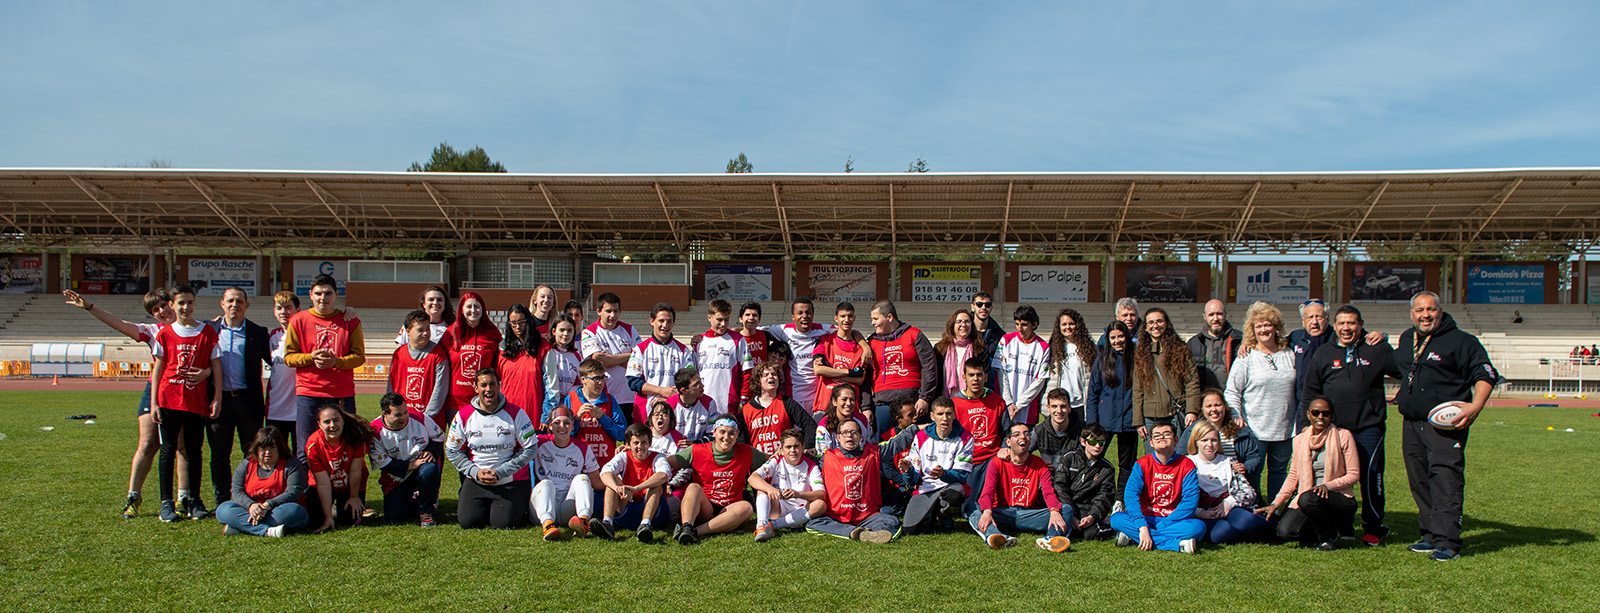 West Chester University visita al Quijote Rugby Club